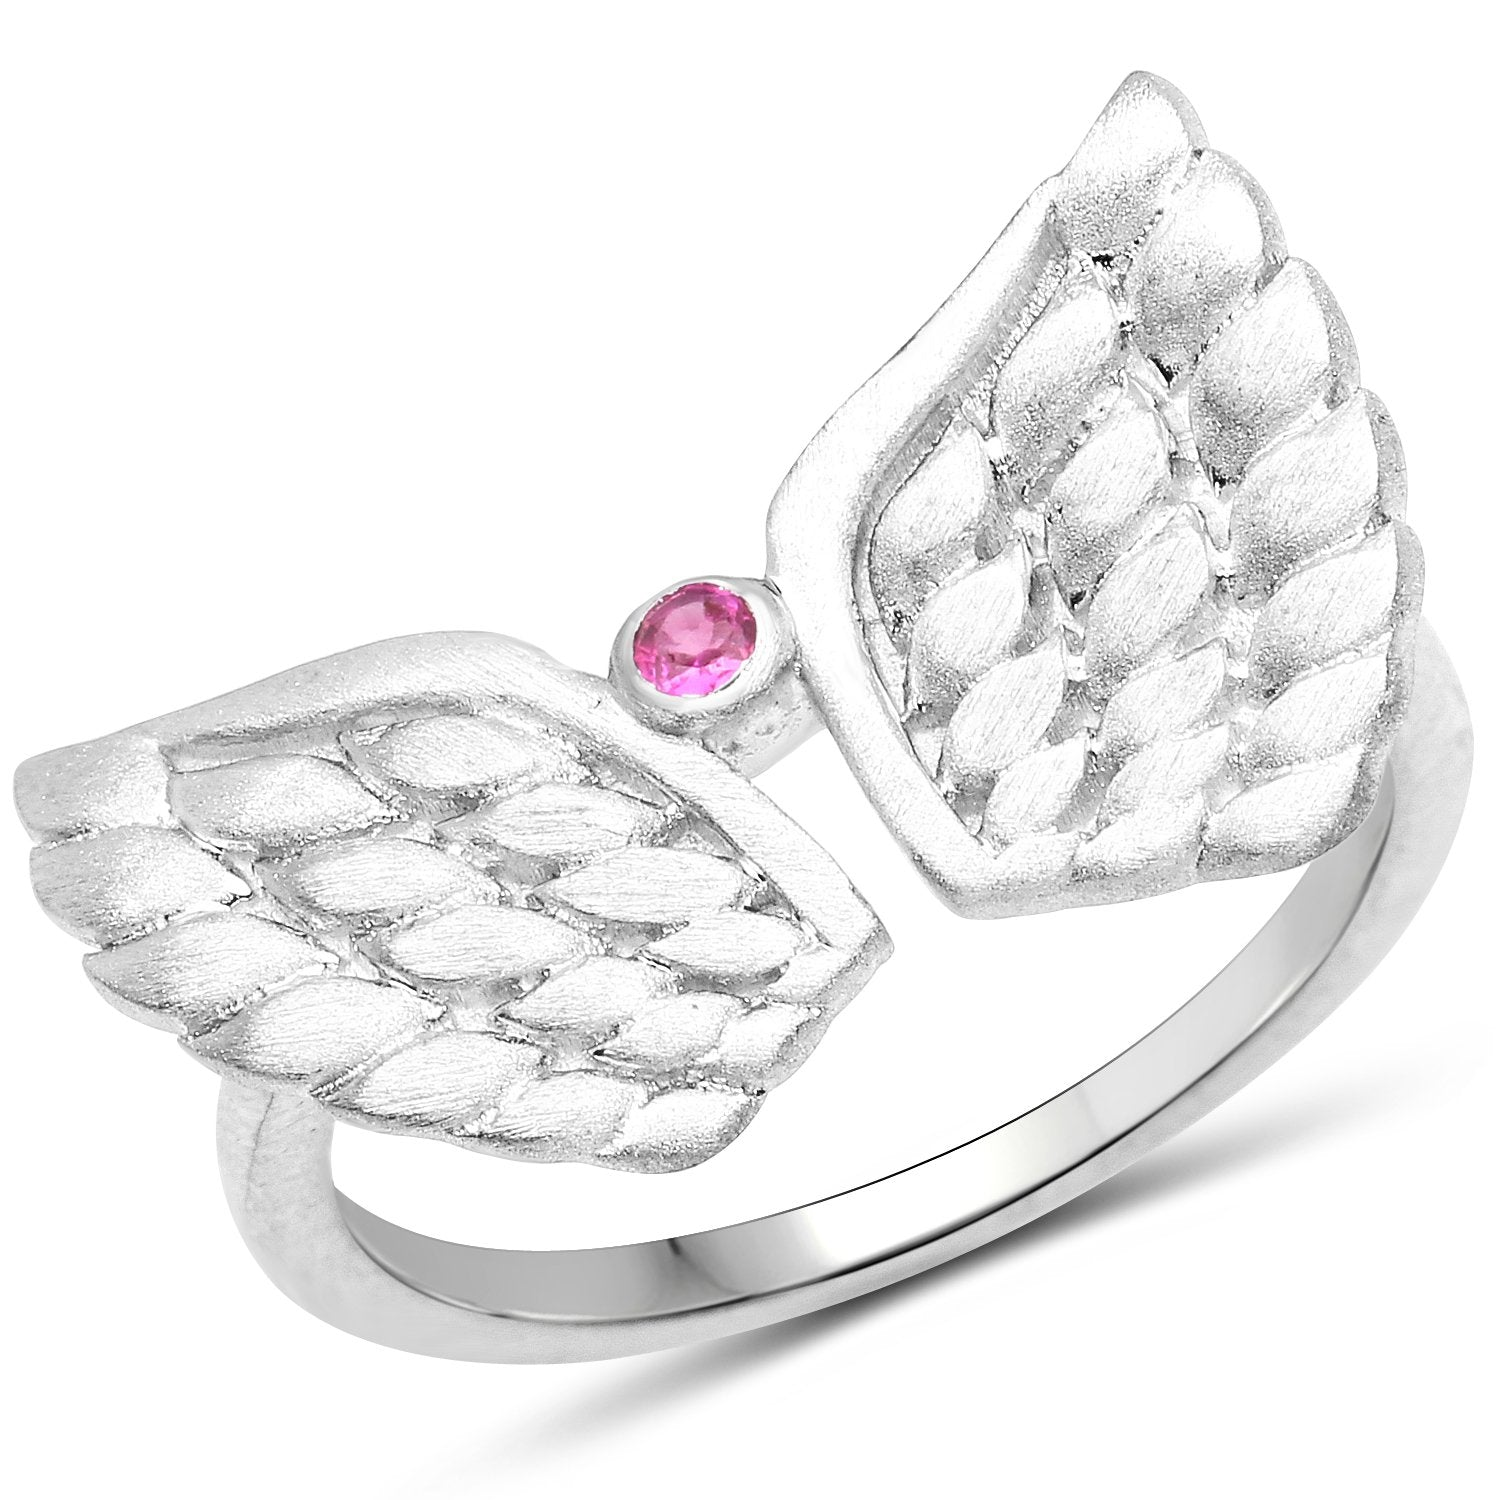 LoveHuang 0.05 Carats Genuine Ruby Angel Ring Solid .925 Sterling Silver With Rhodium Plating, Matte Finish